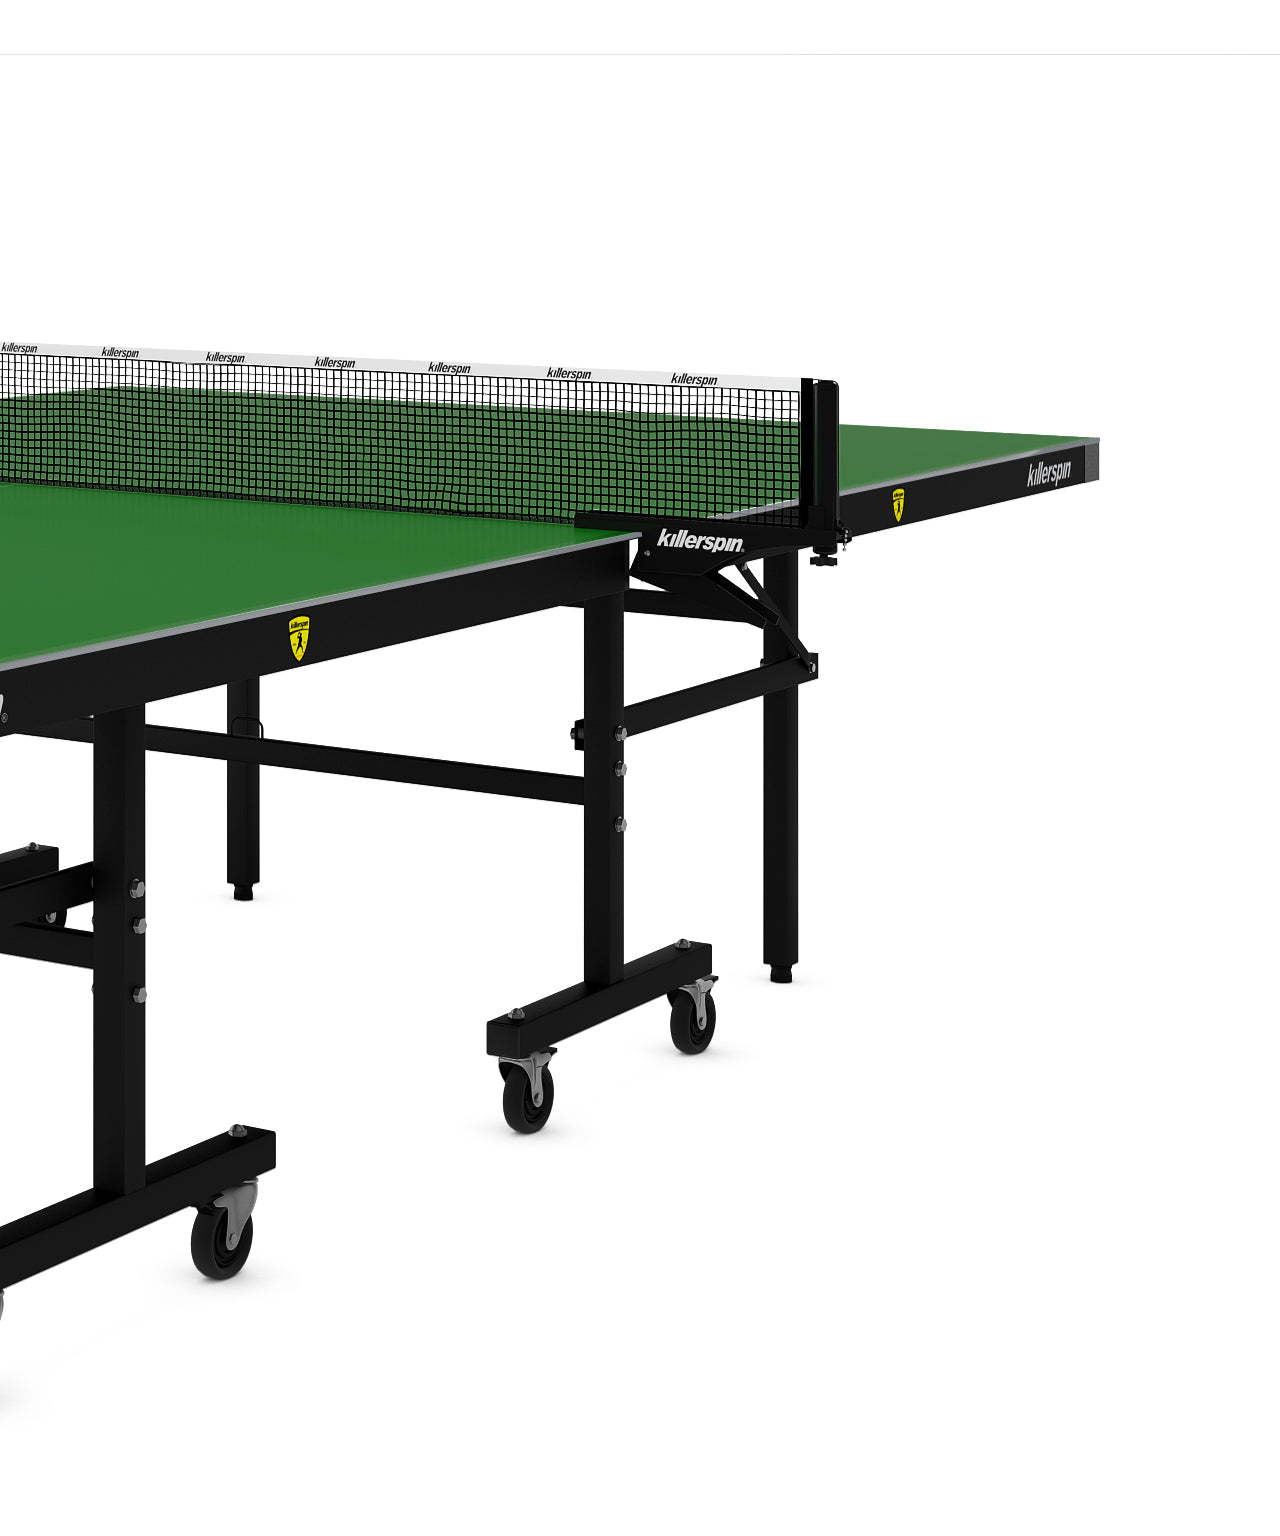 Killerspin Outdoor Ping Pong Table MyT10 Emerald Coast - Net